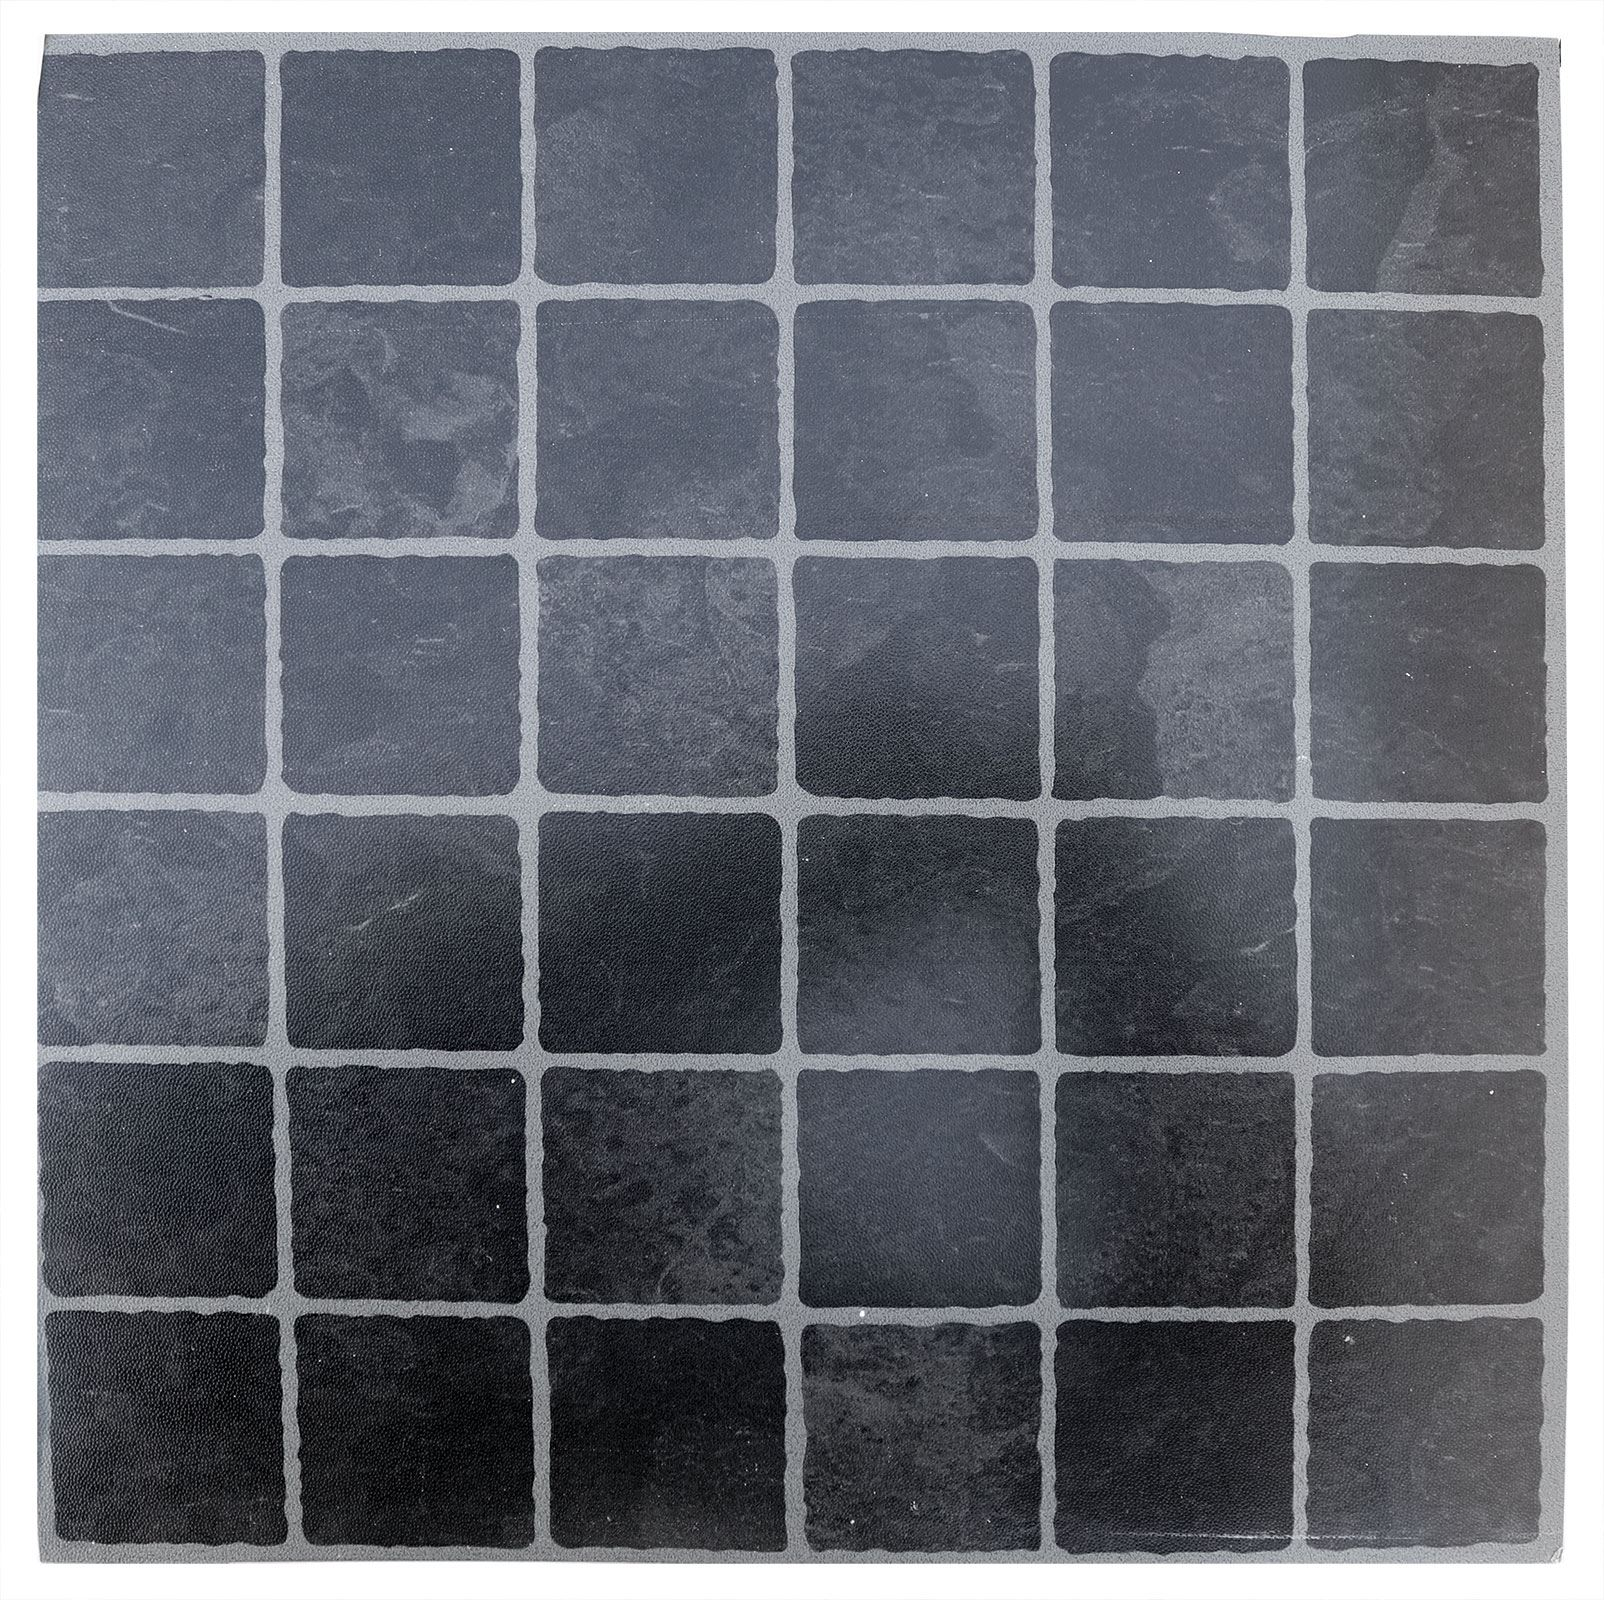 Vinyl Floor Tiles Squares Tile Self Adhesive Easy To Fit